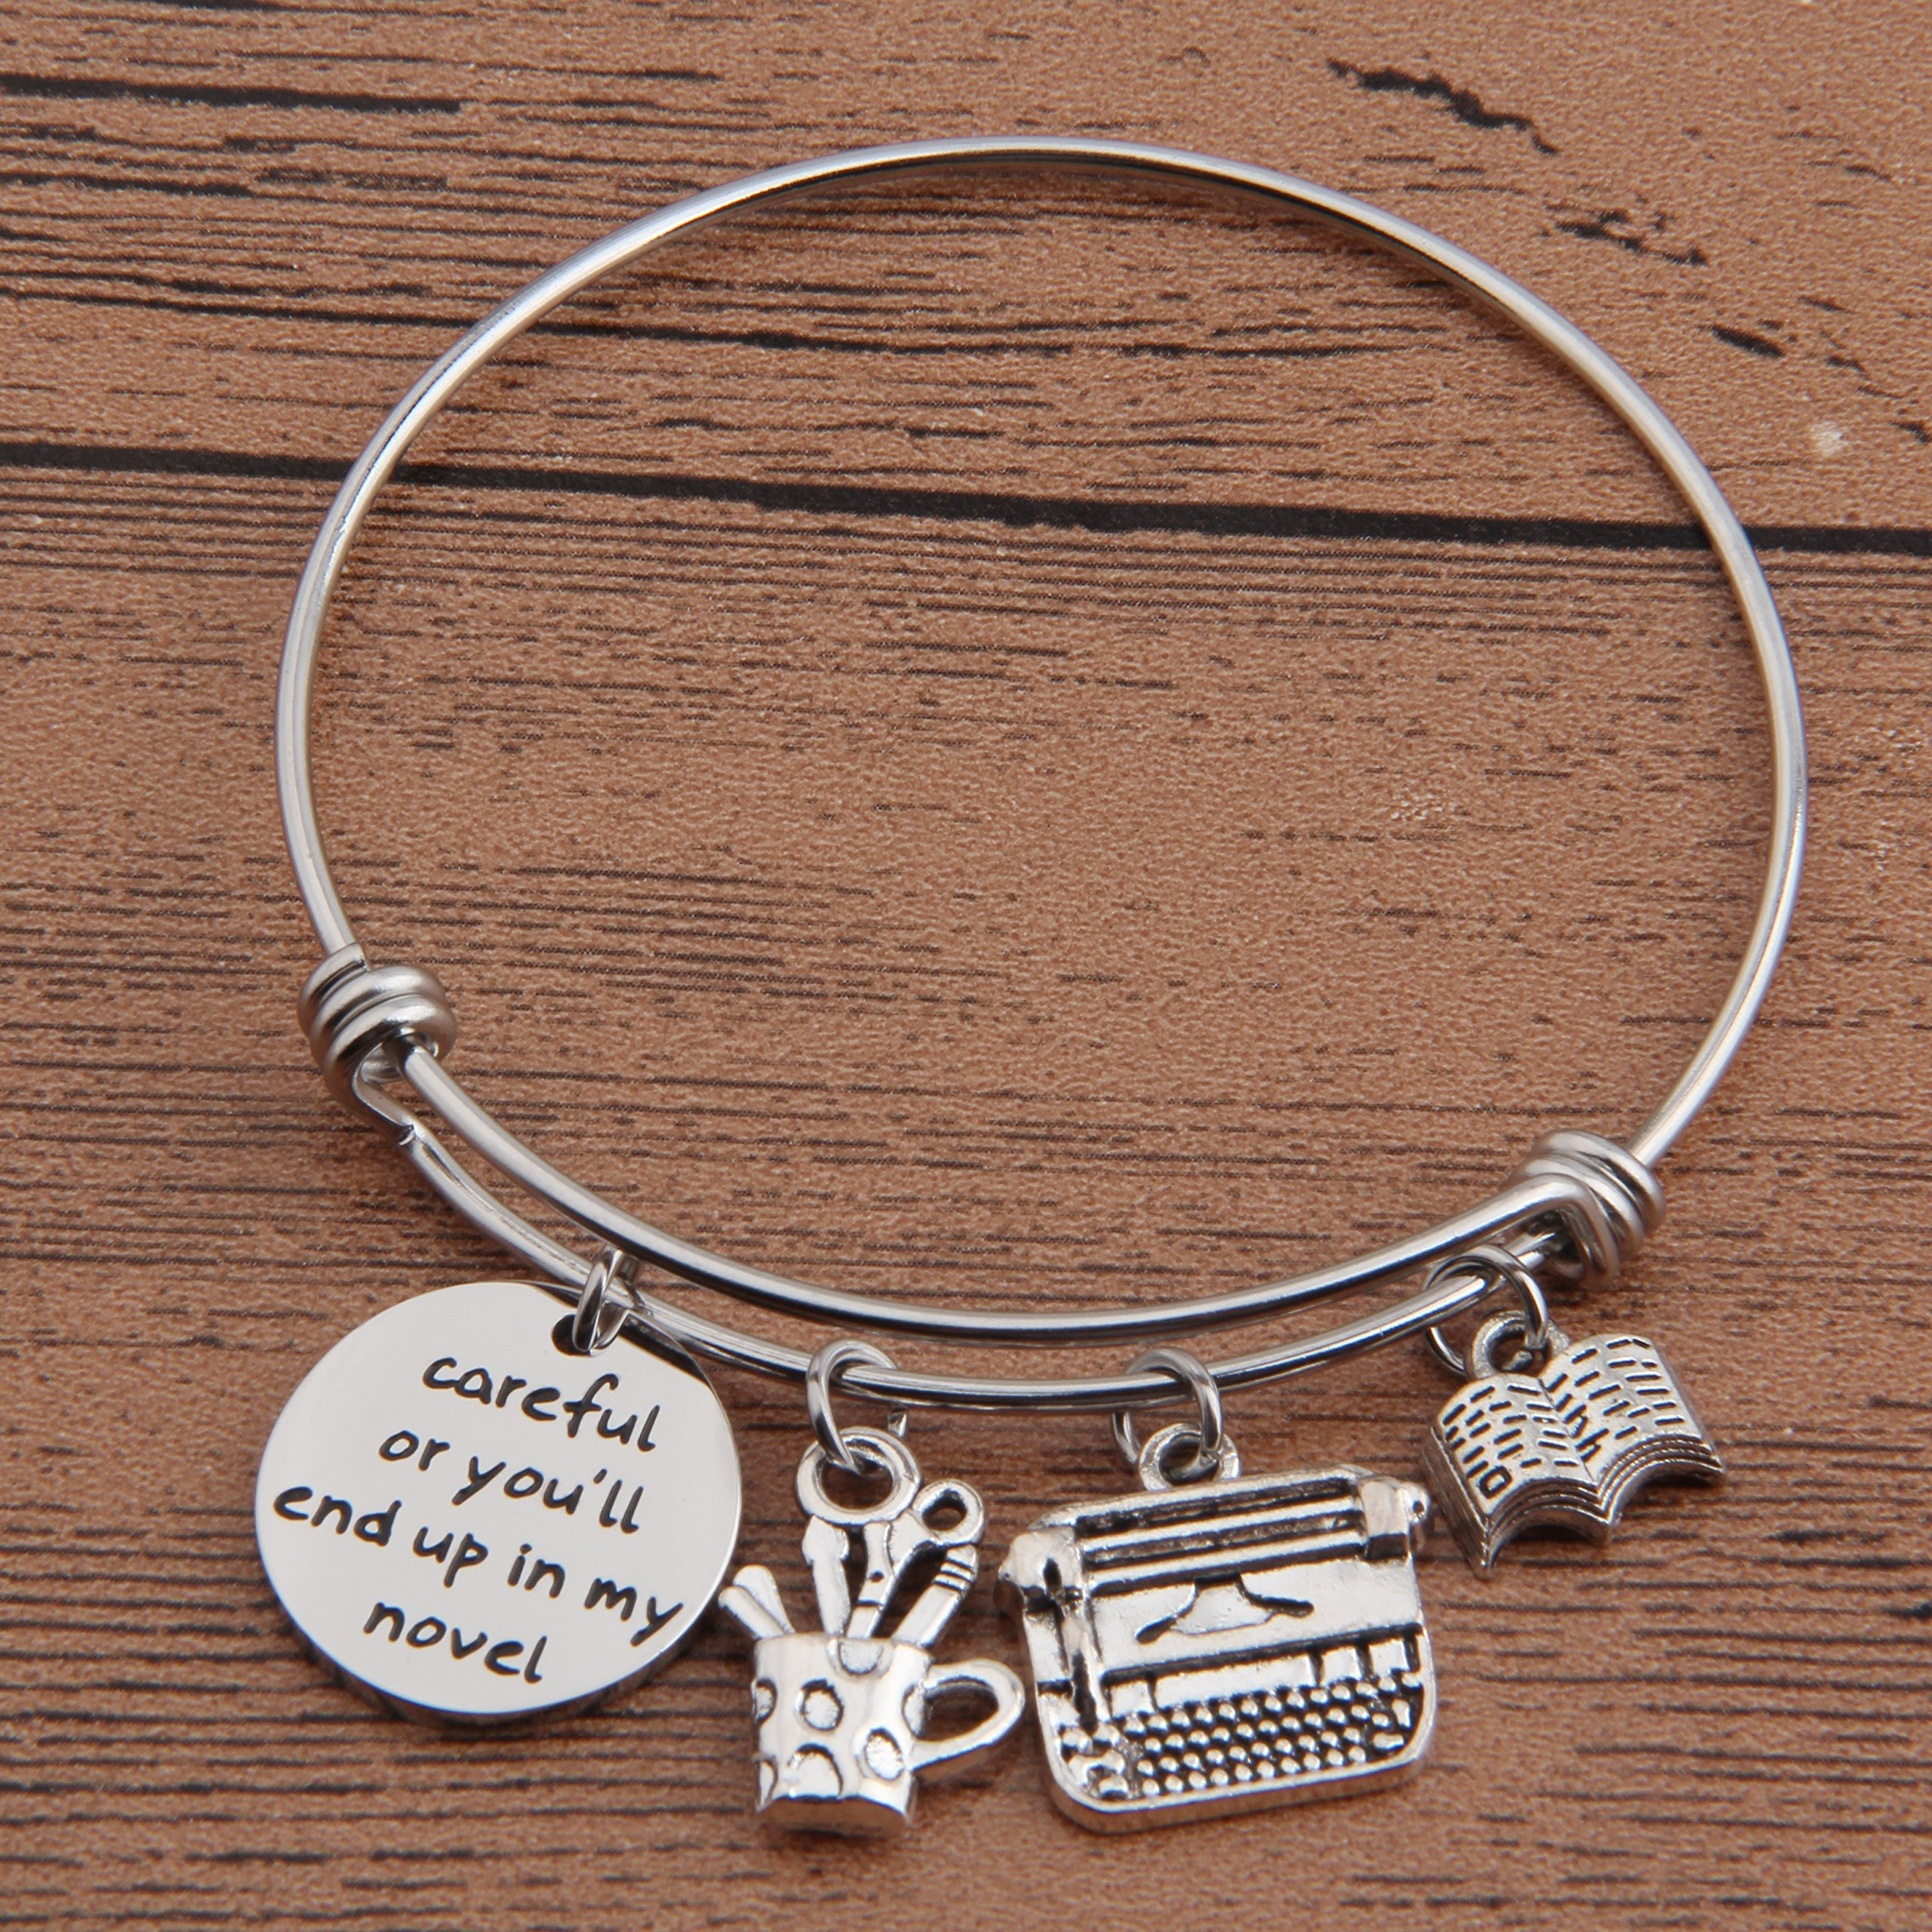 Gzrlyf Writer Bracelet Author Bracelet Writer Gift Novelist Gift Careful Or Youll End Up In My Novel Jewelry Writing Gift Author Jewelry (Writer bracelet) by Gzrlyf (Image #5)